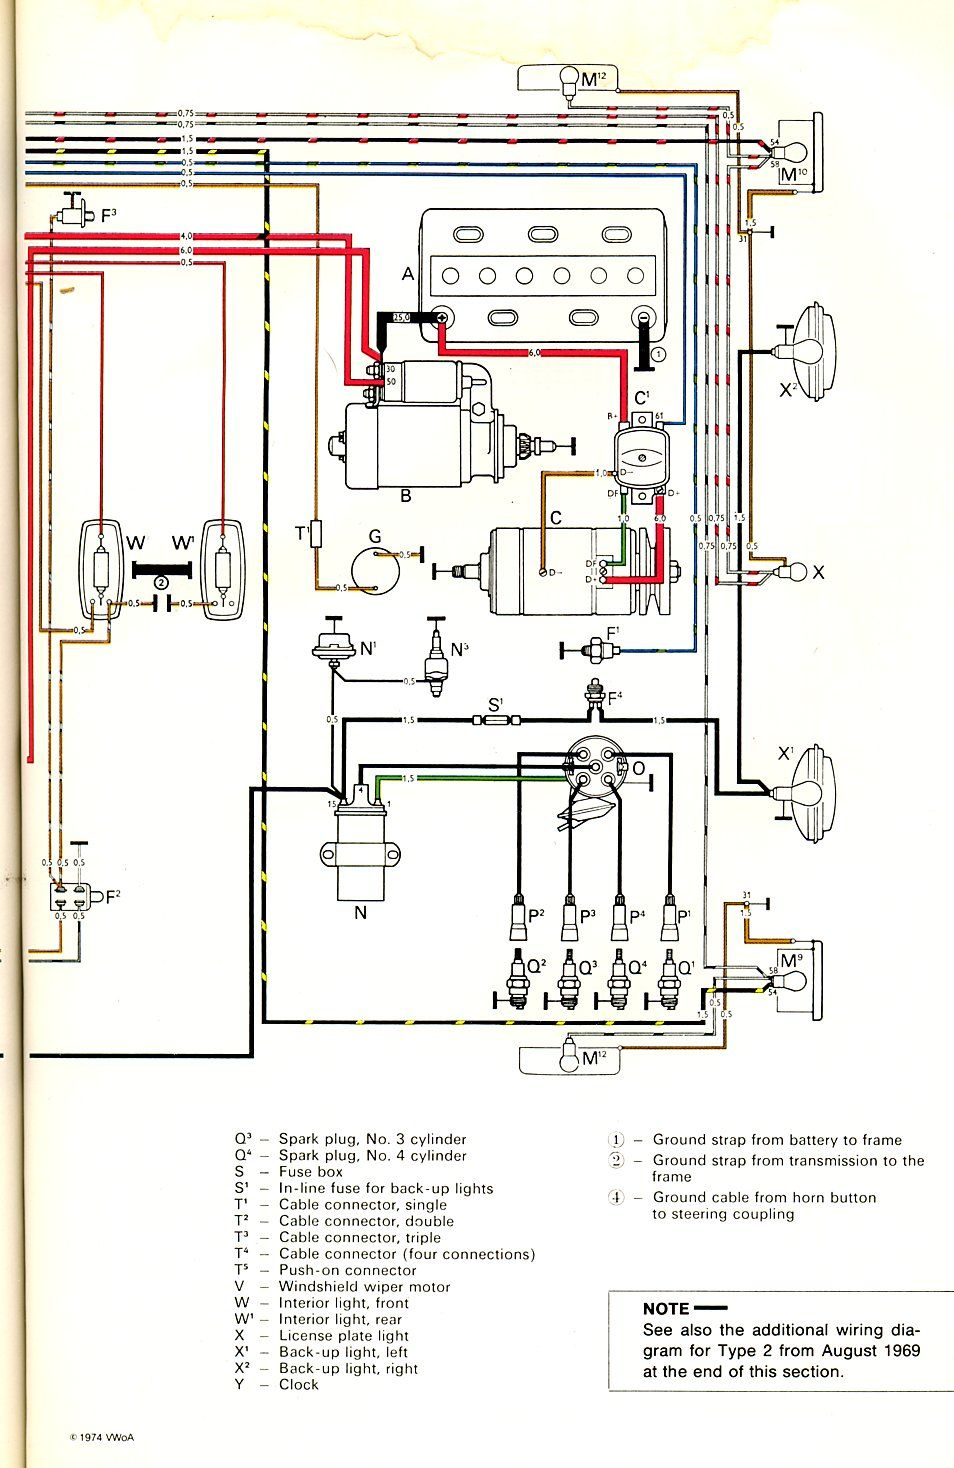 Electrical wiring drawing | VW links | Electrical projects, Electrical maintenance, Electrical